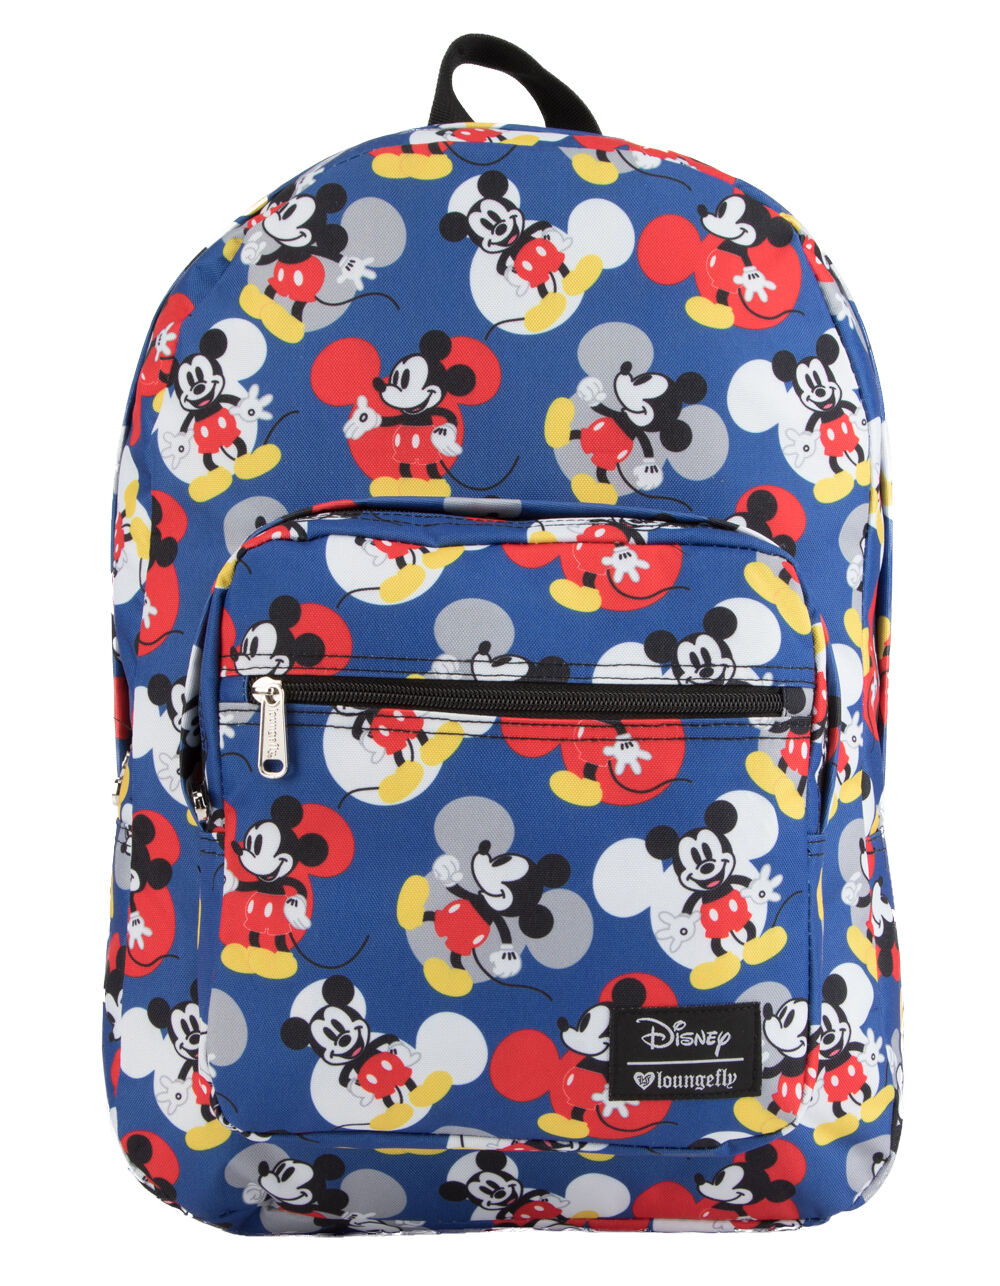 Image of LOUNGEFLY X DISNEY MICKEY BACKPACK